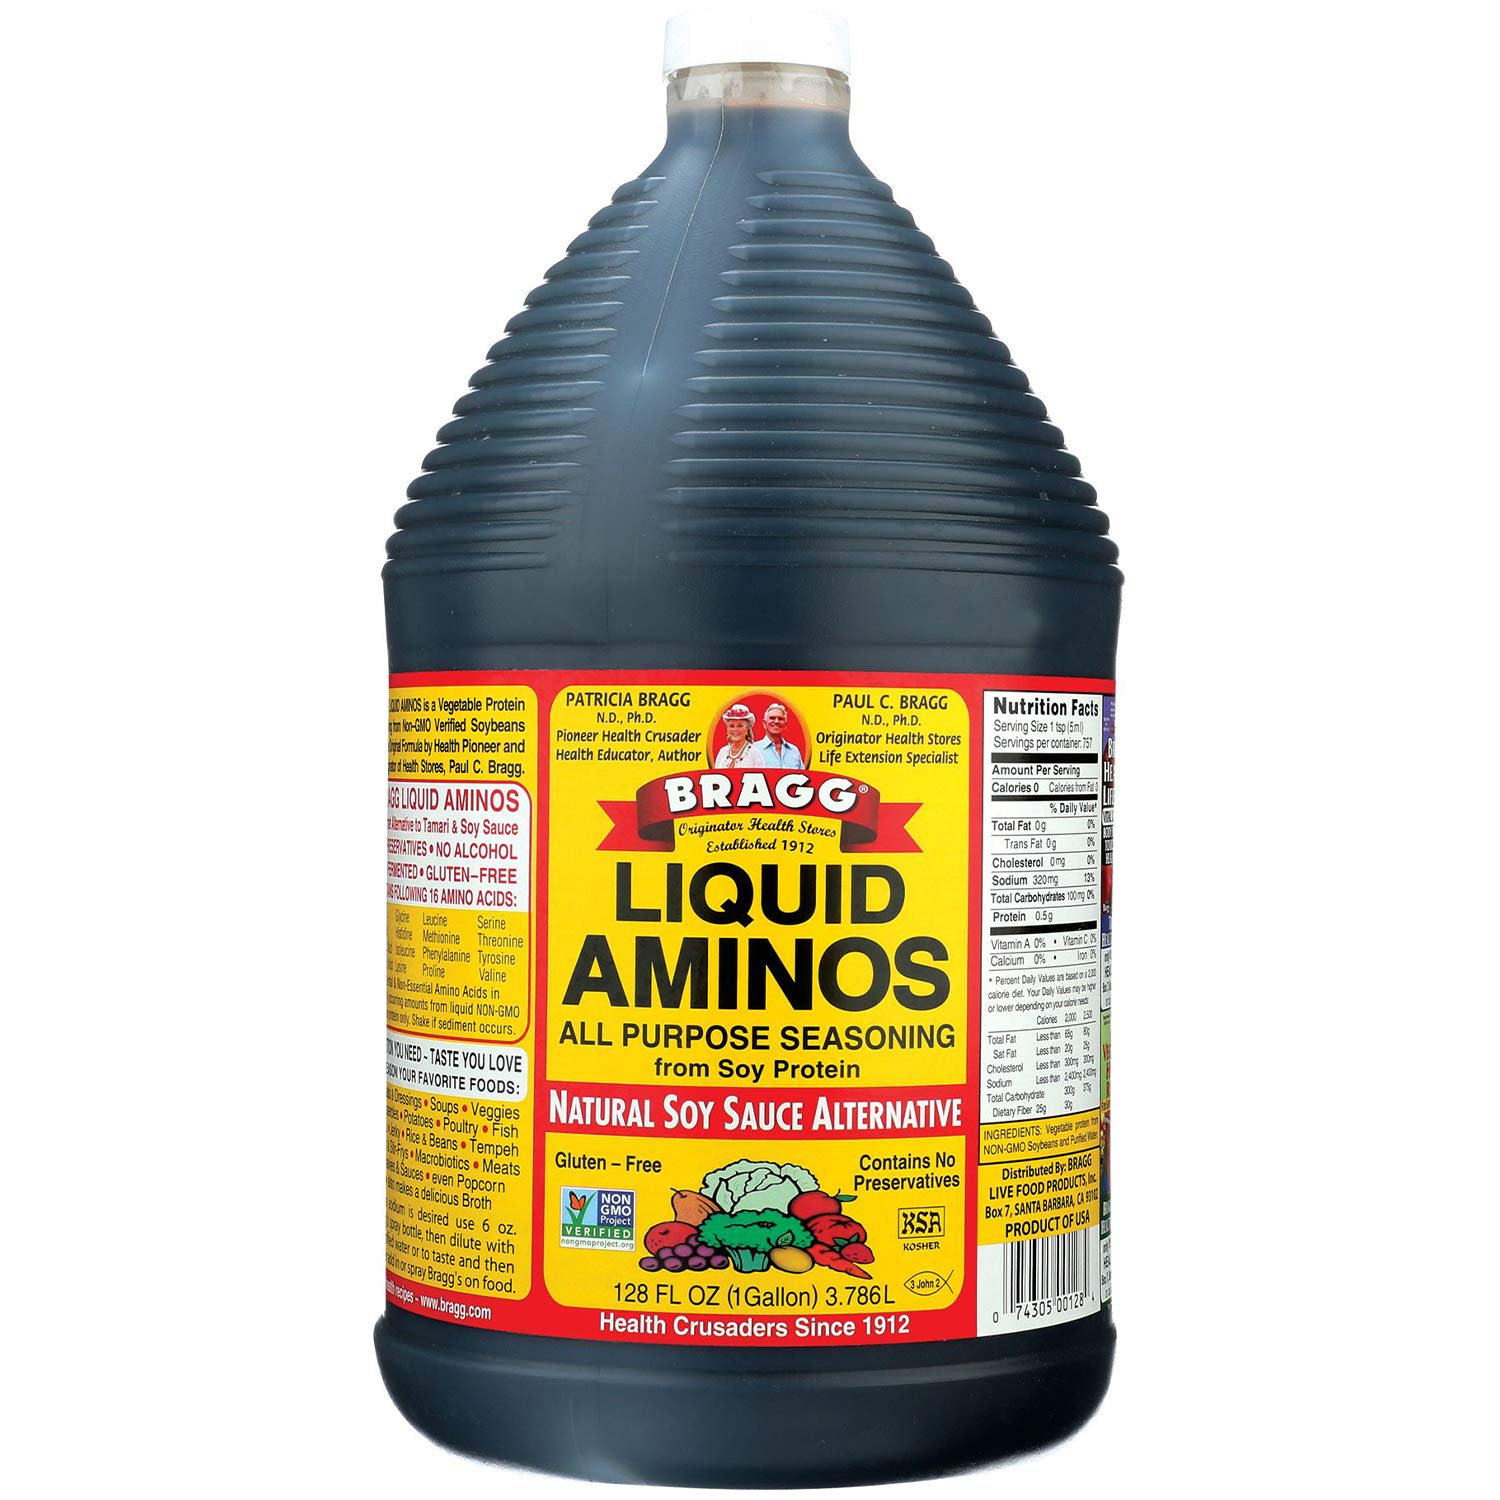 Bragg Liquid Aminos All Purpose Seasoning – Soy Sauce Alternative – Gluten Free, No GMO's, Kosher Certified, 1 Gallon